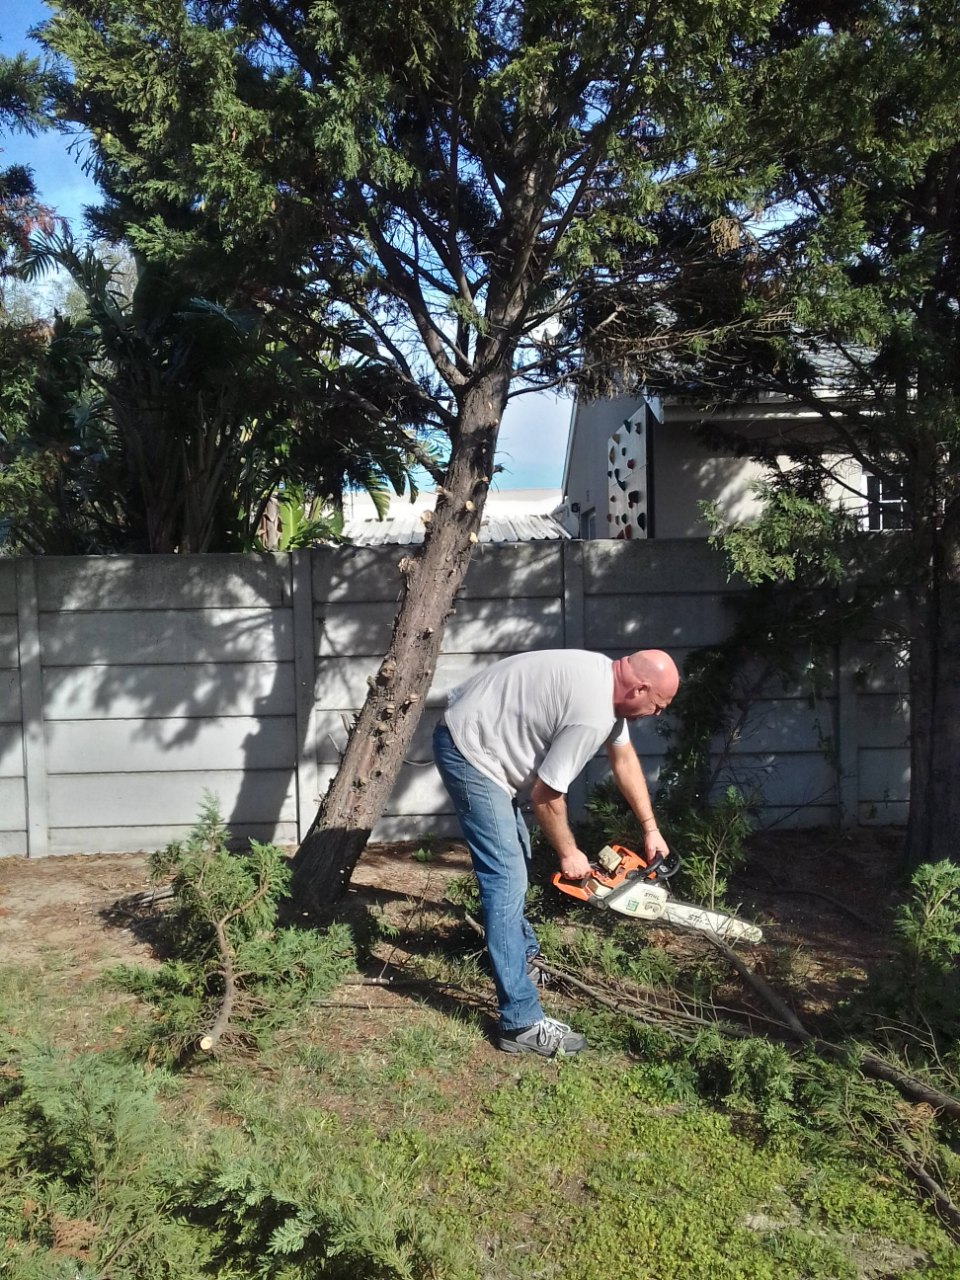 PROFESSIONAL TREE FELLING SERVICES OFFERED IN CAPE TOWN